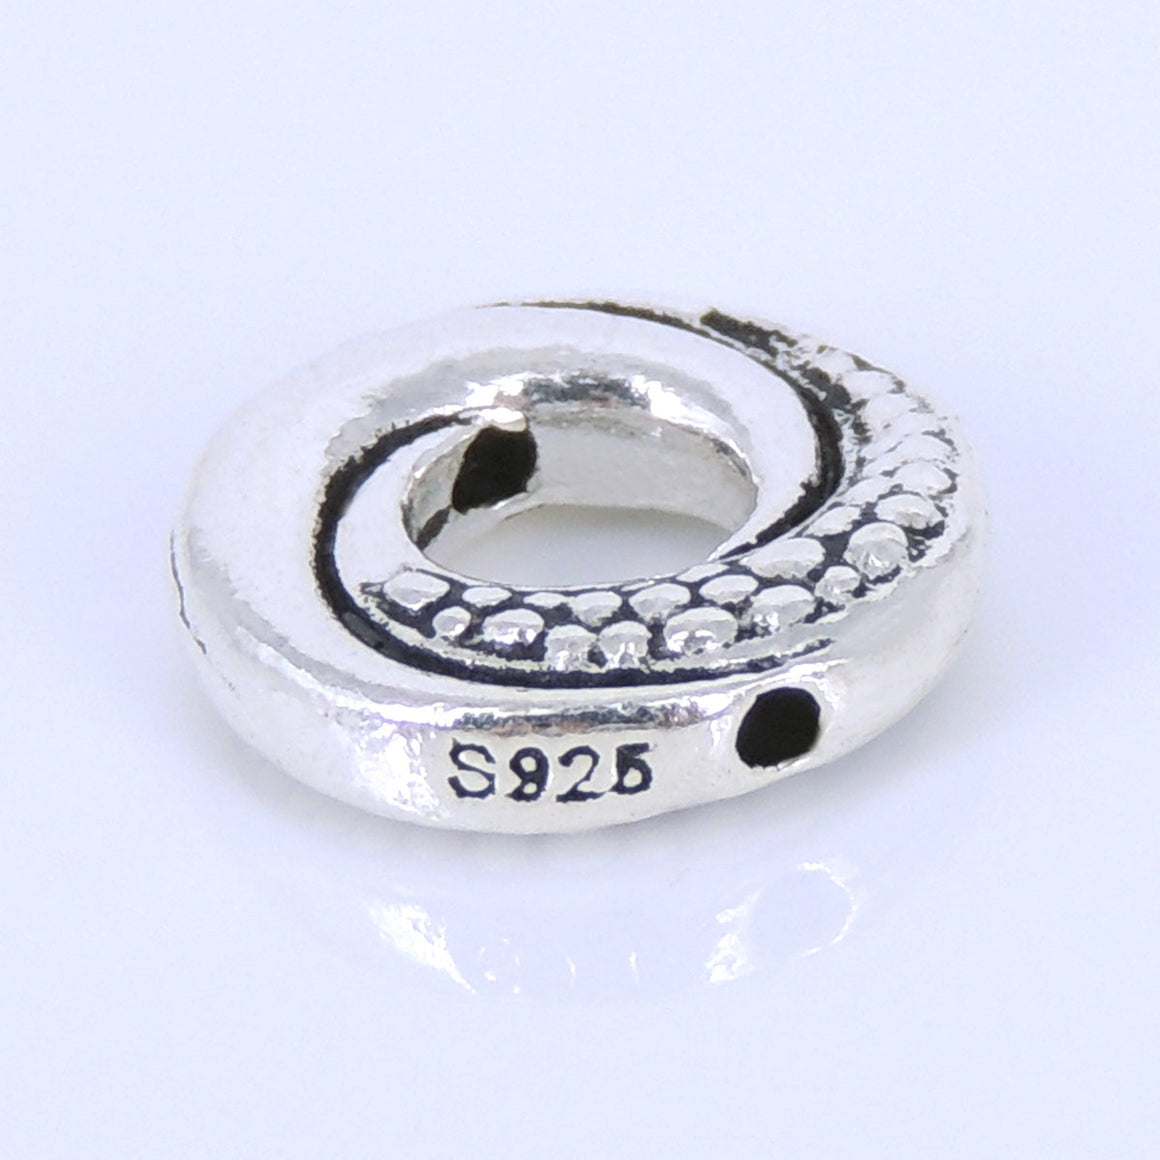 1 PC Snake Tail Donut Charm - S925 Sterling Silver WSP289X1